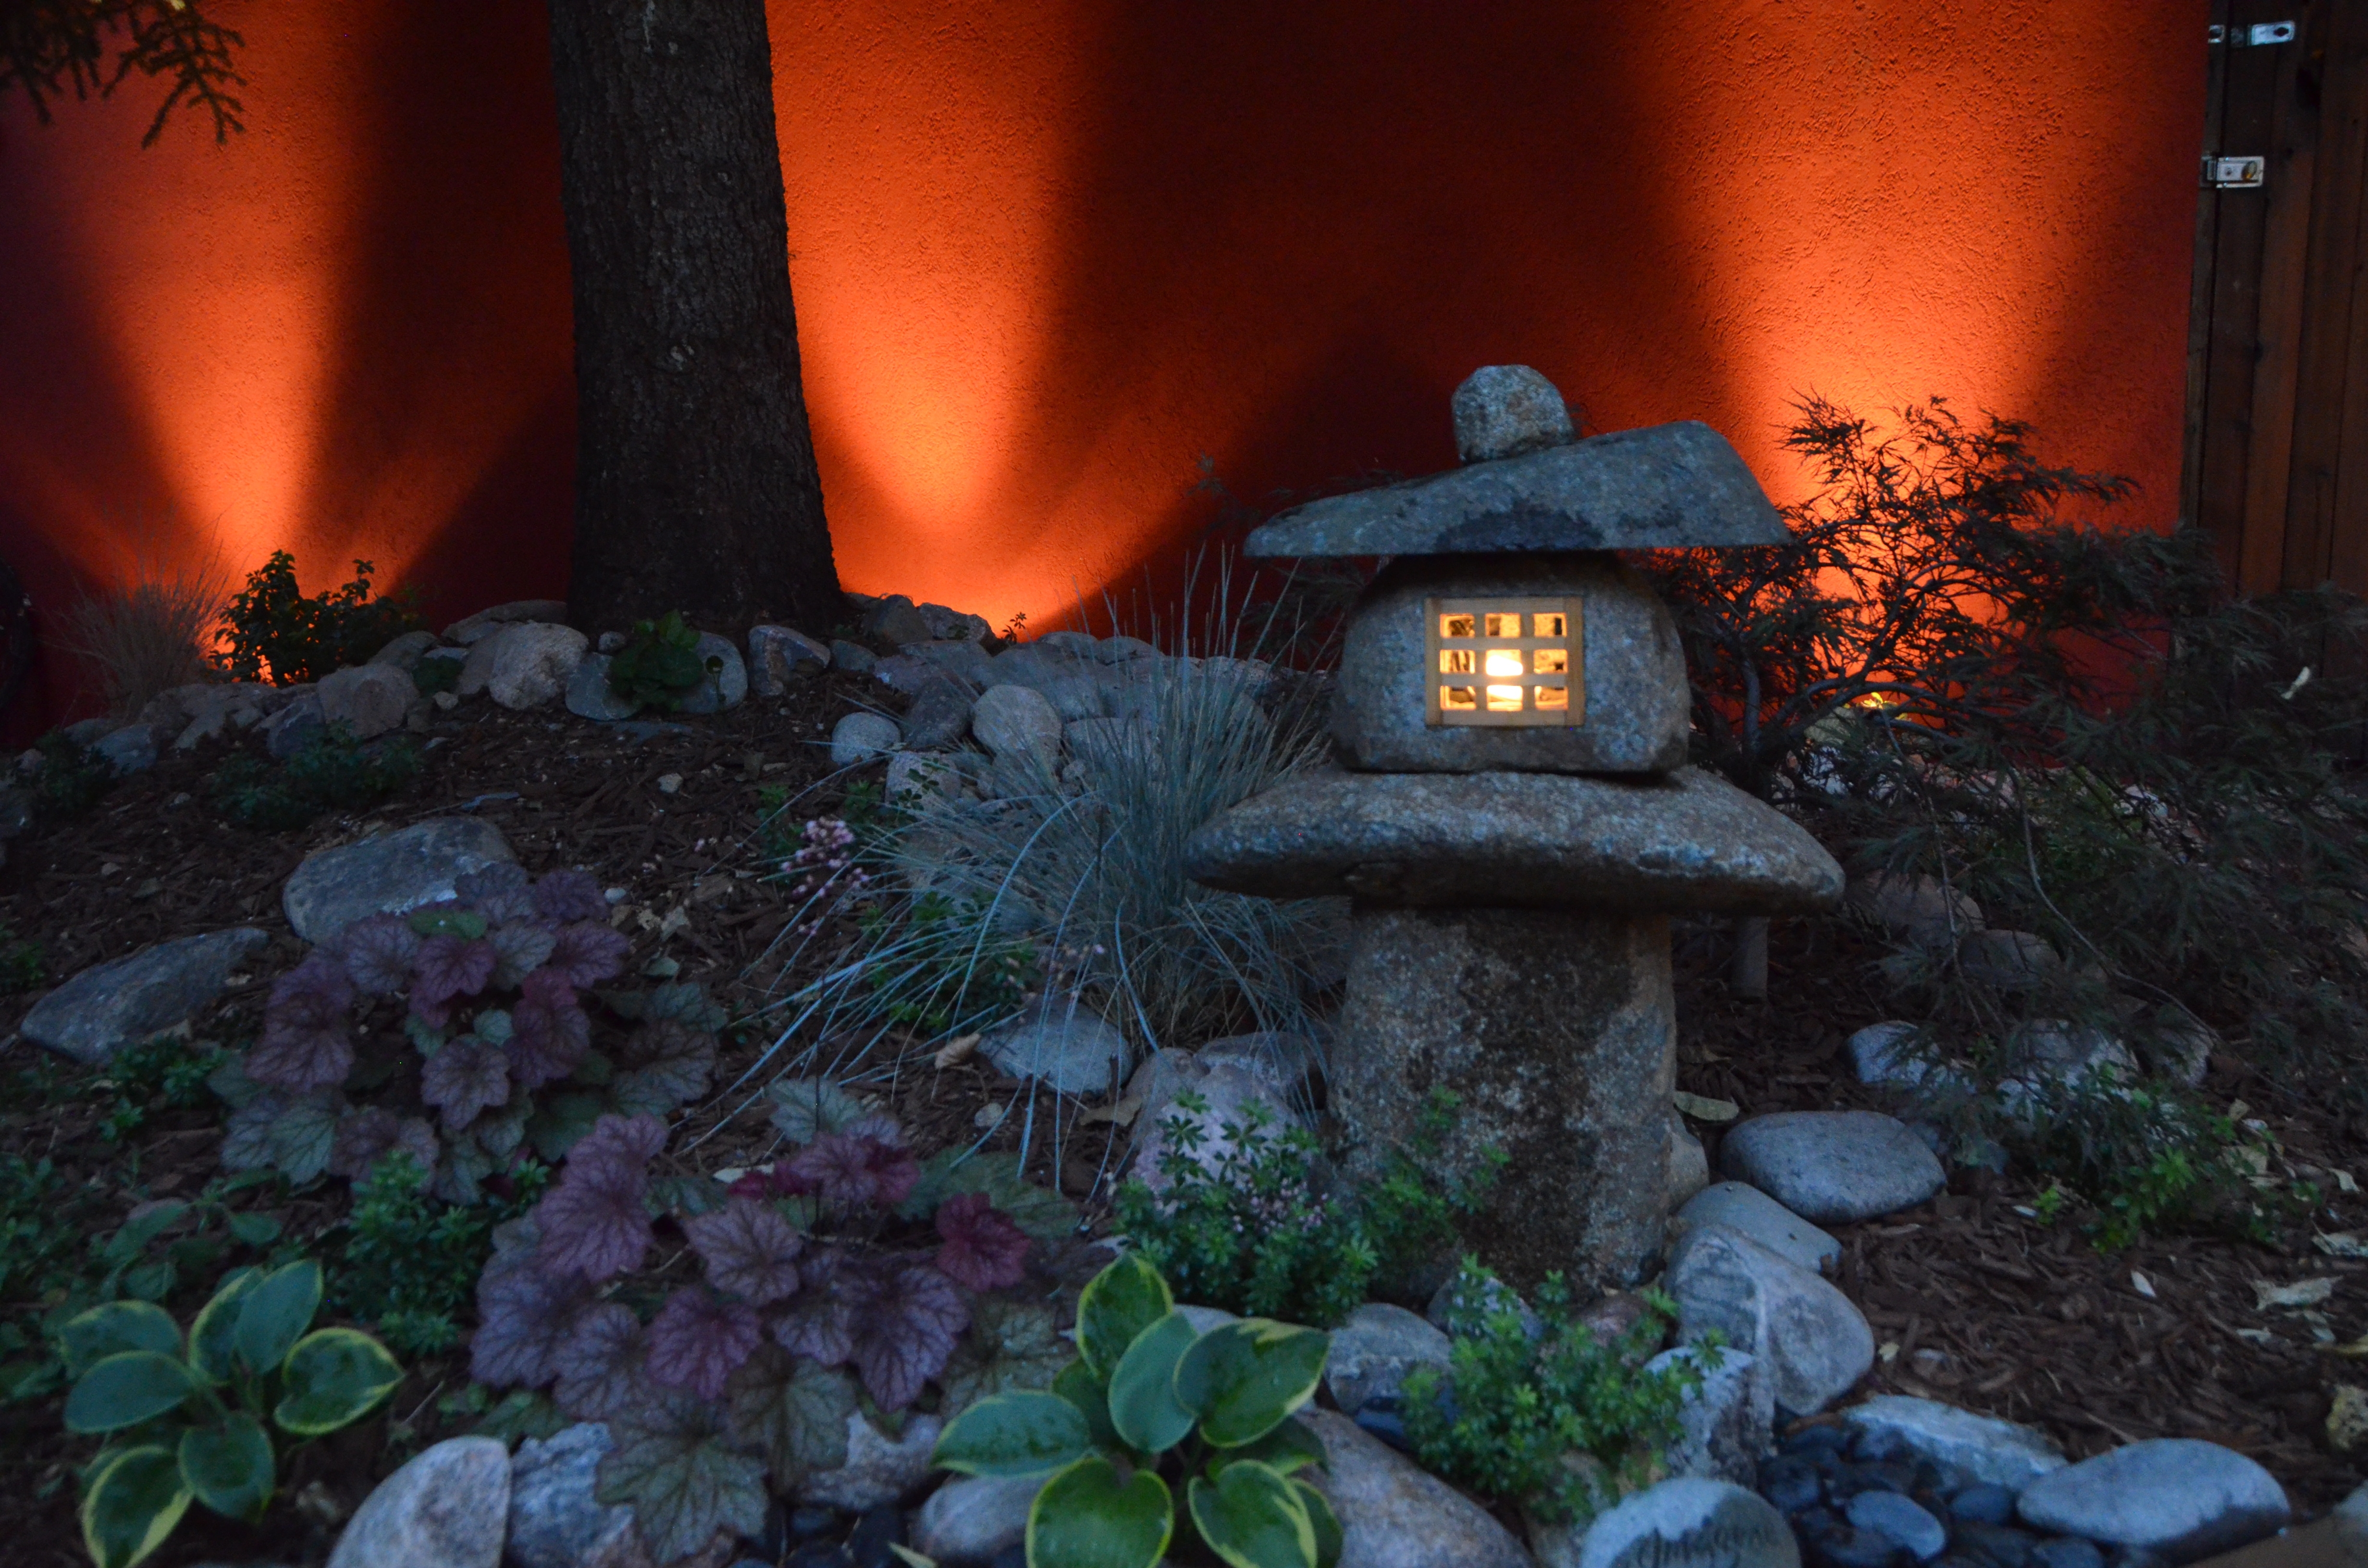 Japanese Lantern With Outdoor Lighting - Landscaping In Denver with regard to Outdoor Japanese Lanterns (Image 7 of 20)